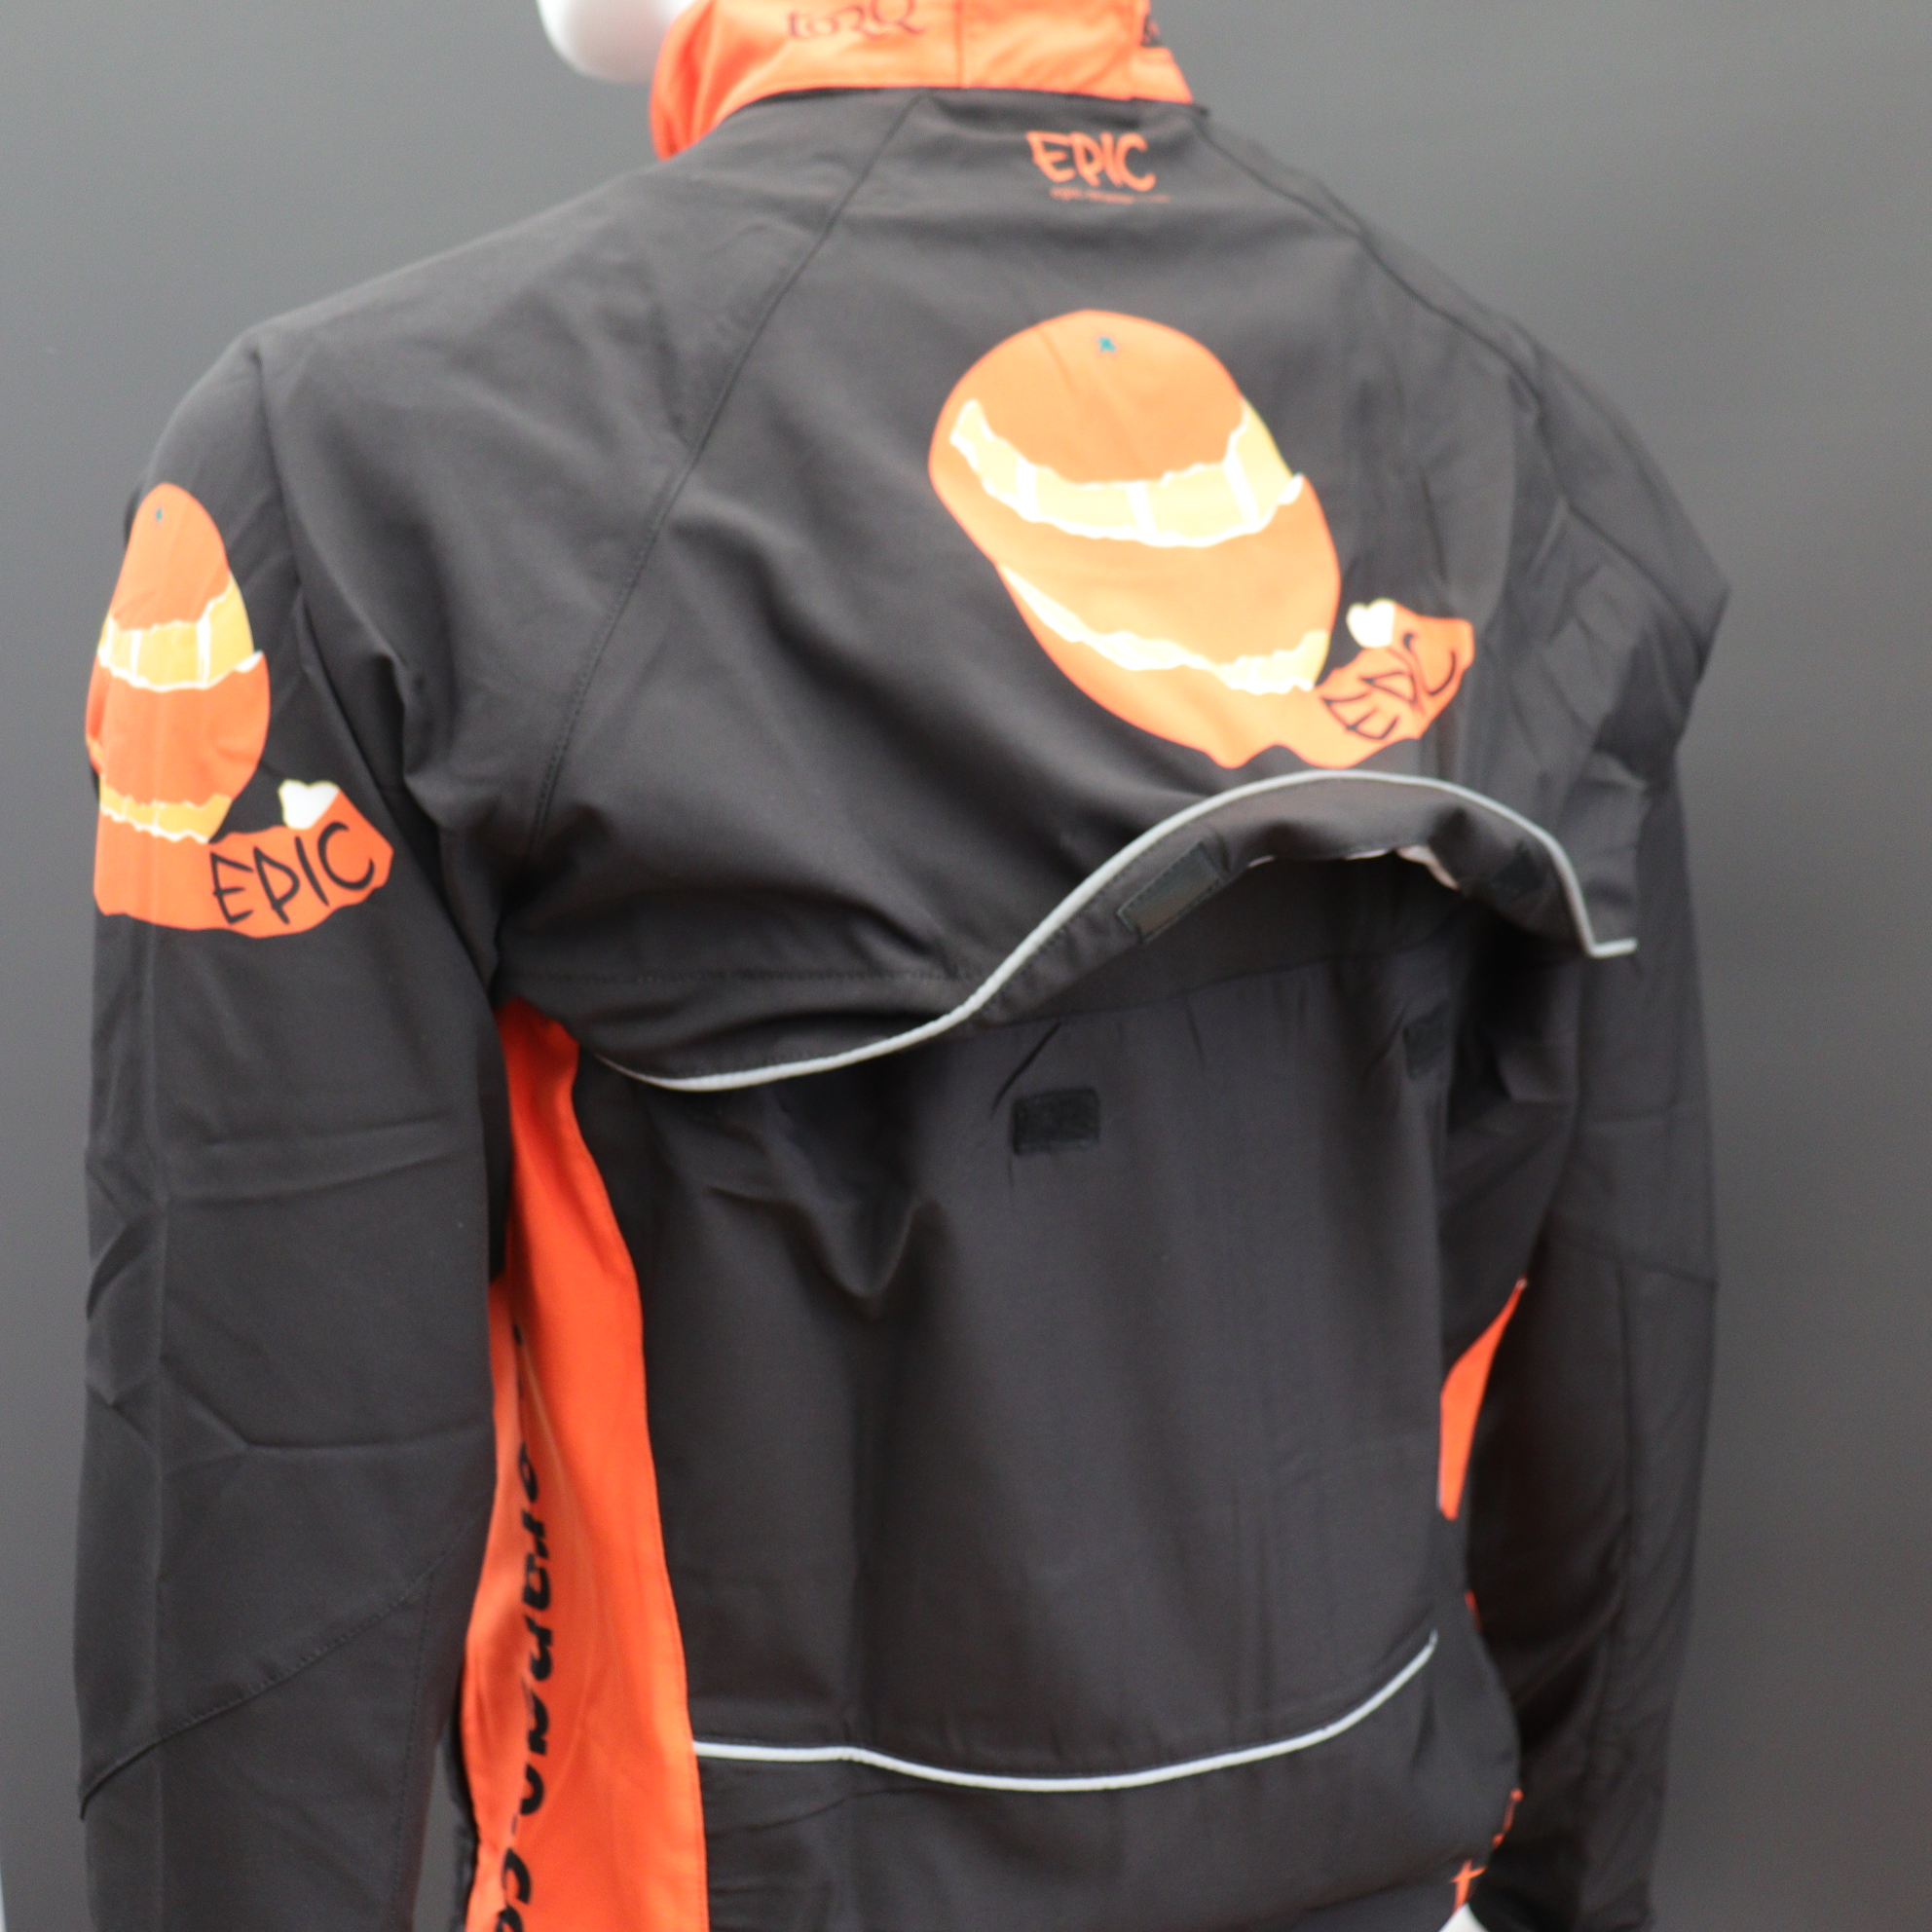 Convertible Cycle Jackets Vented Back